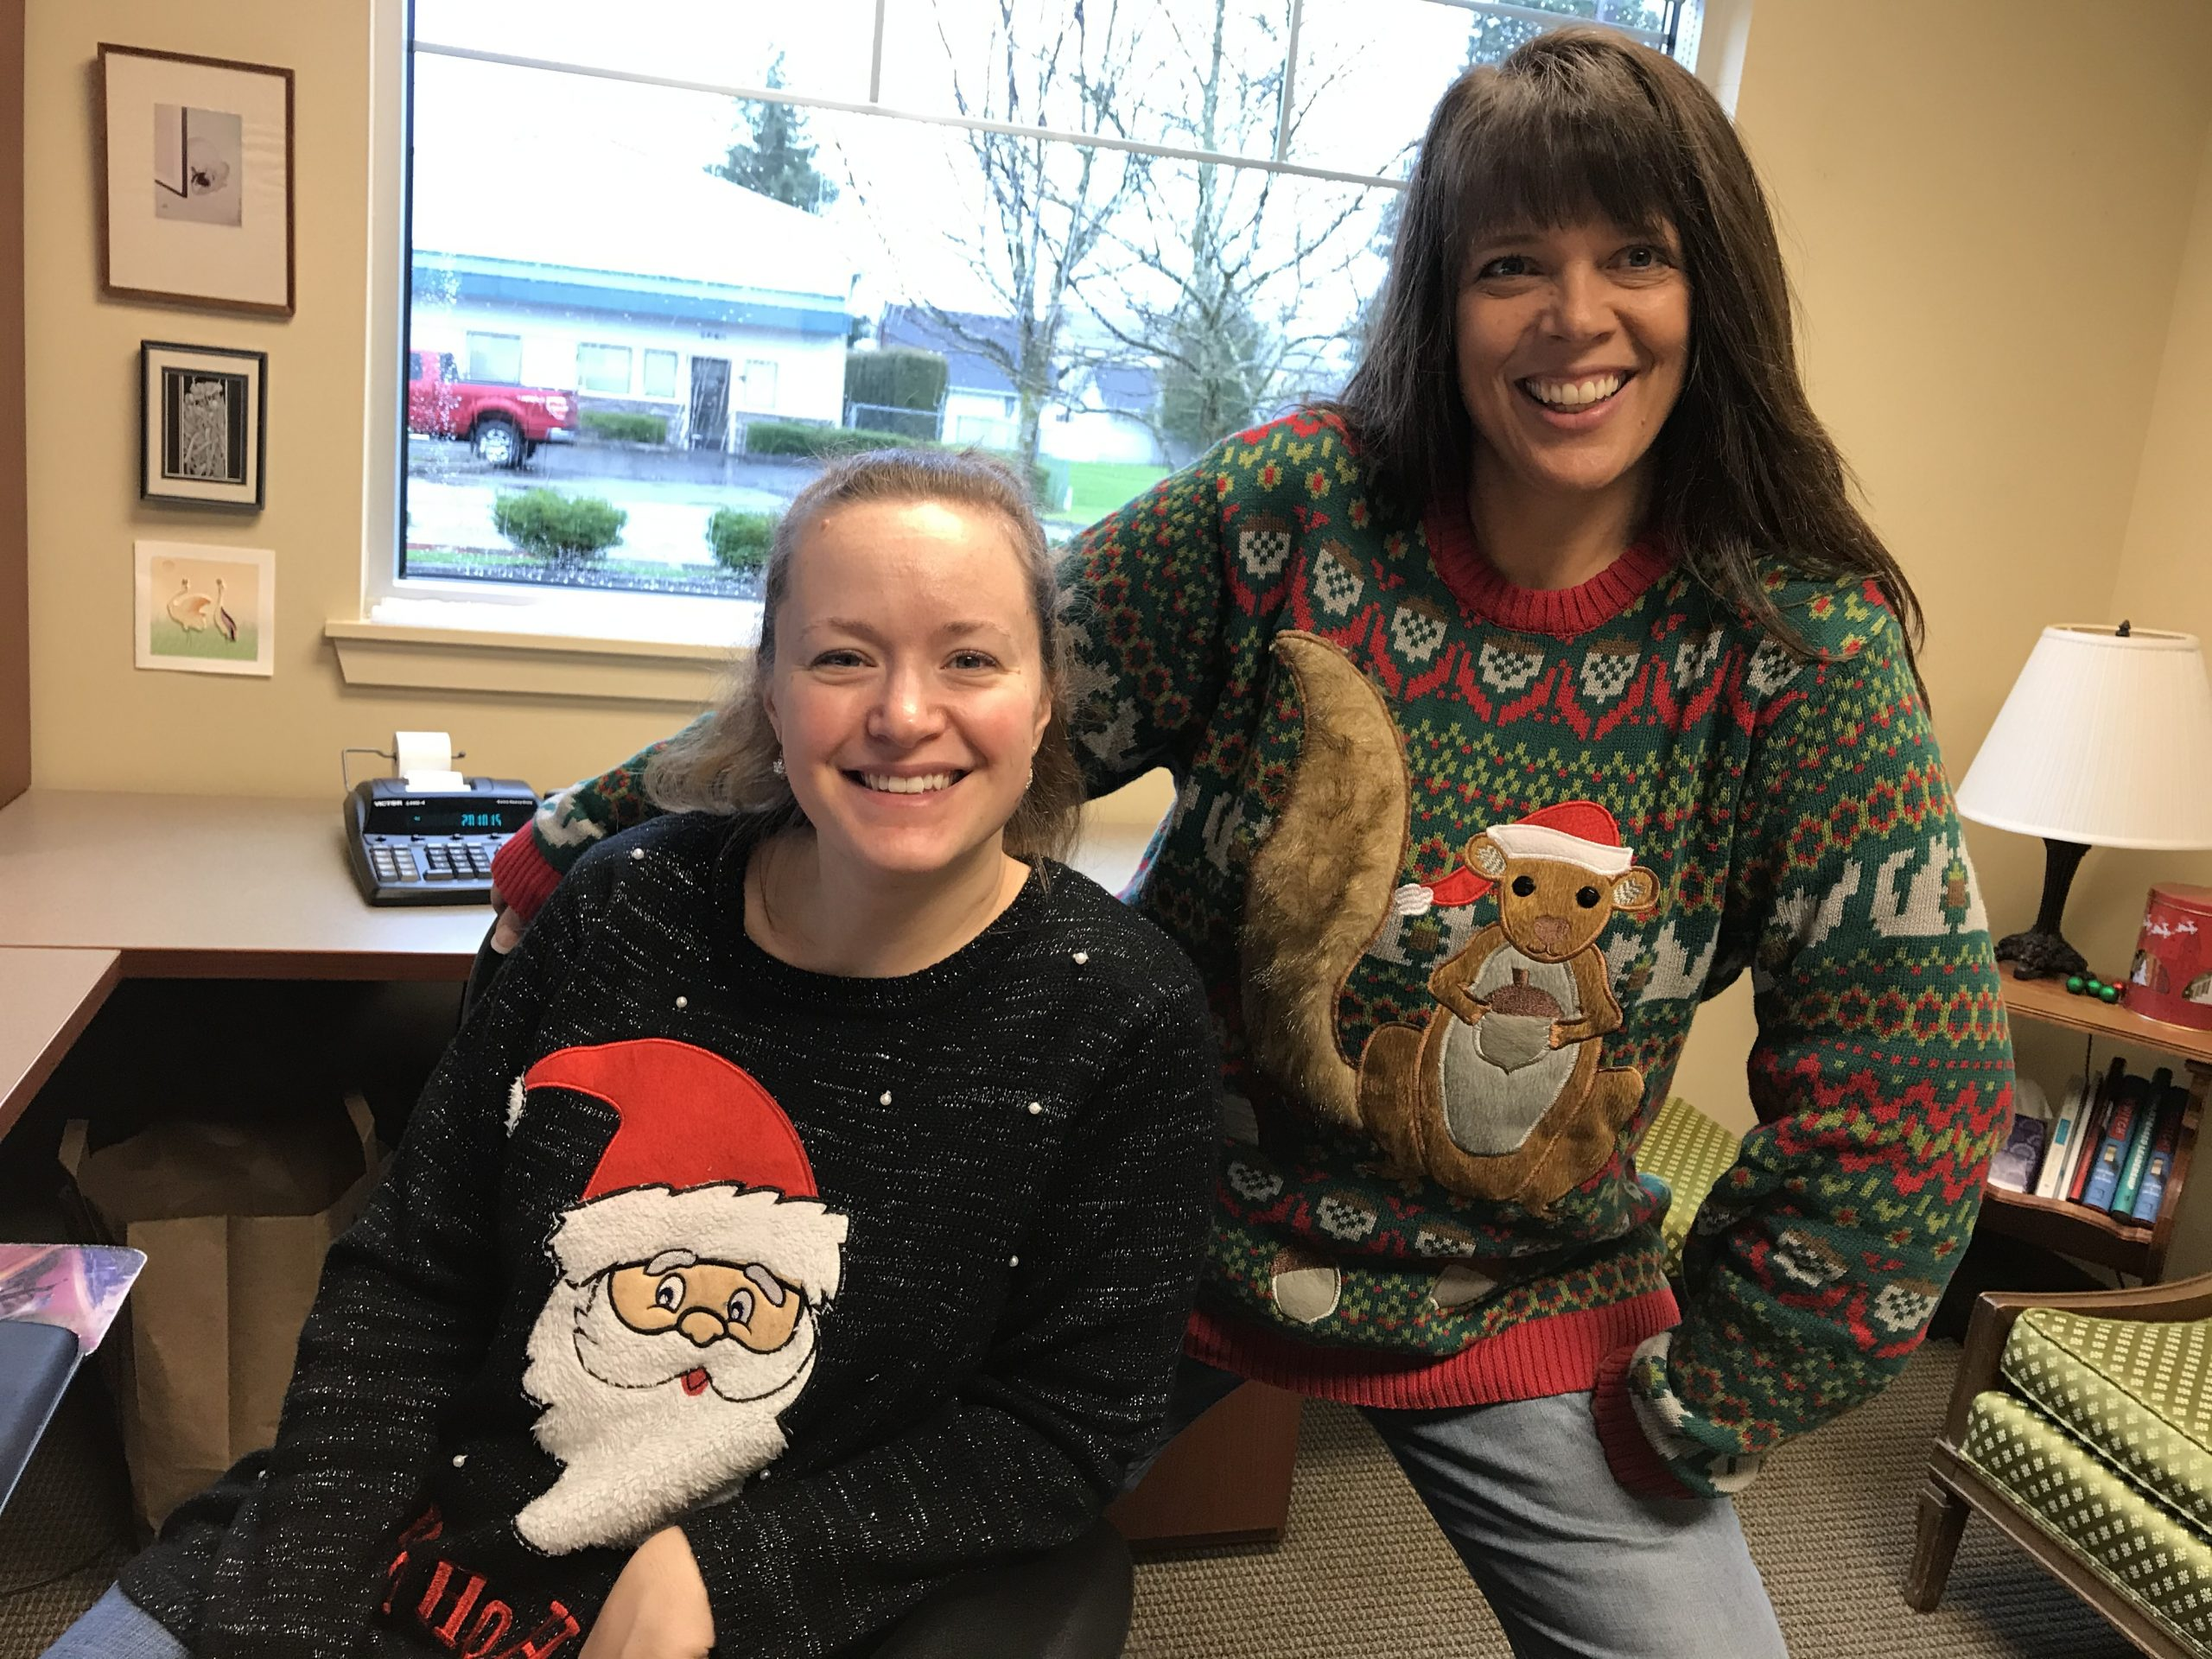 Two WRCU employees posing in their ugly sweaters